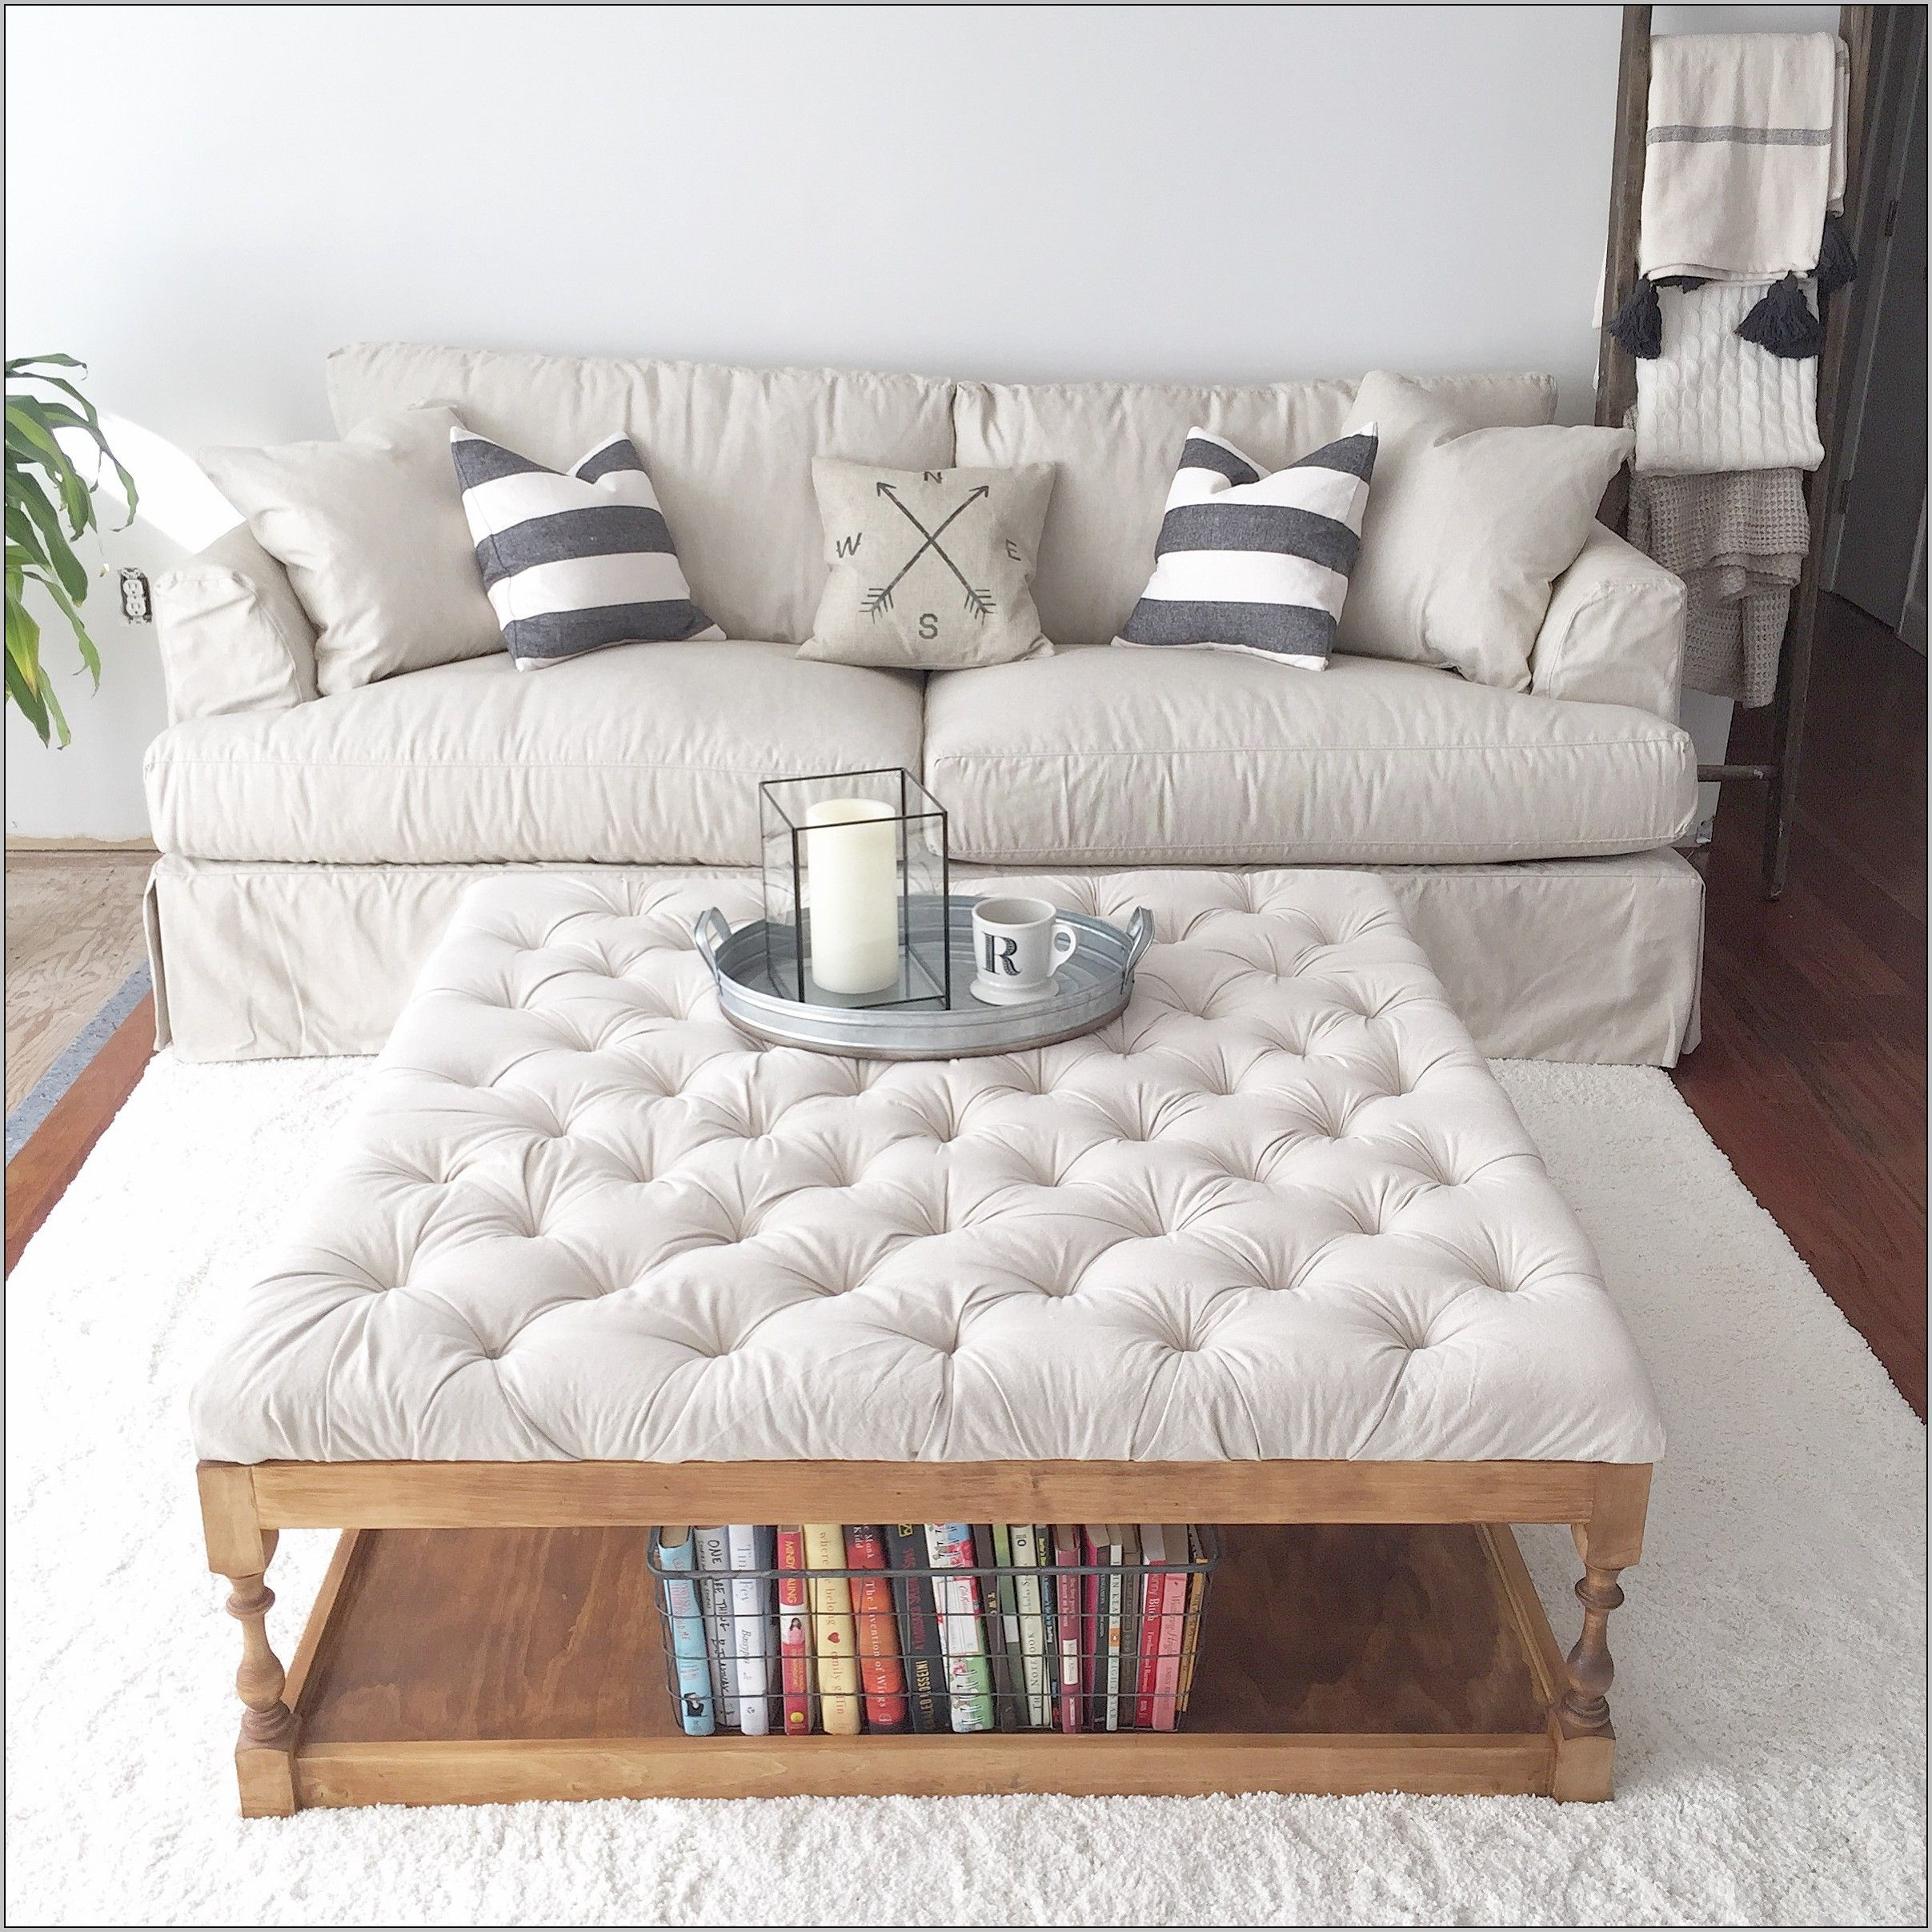 Tufted Ottoman Coffee Table Diy Apartment Tufted Ottoman Coffee within dimensions 2414 X 2414